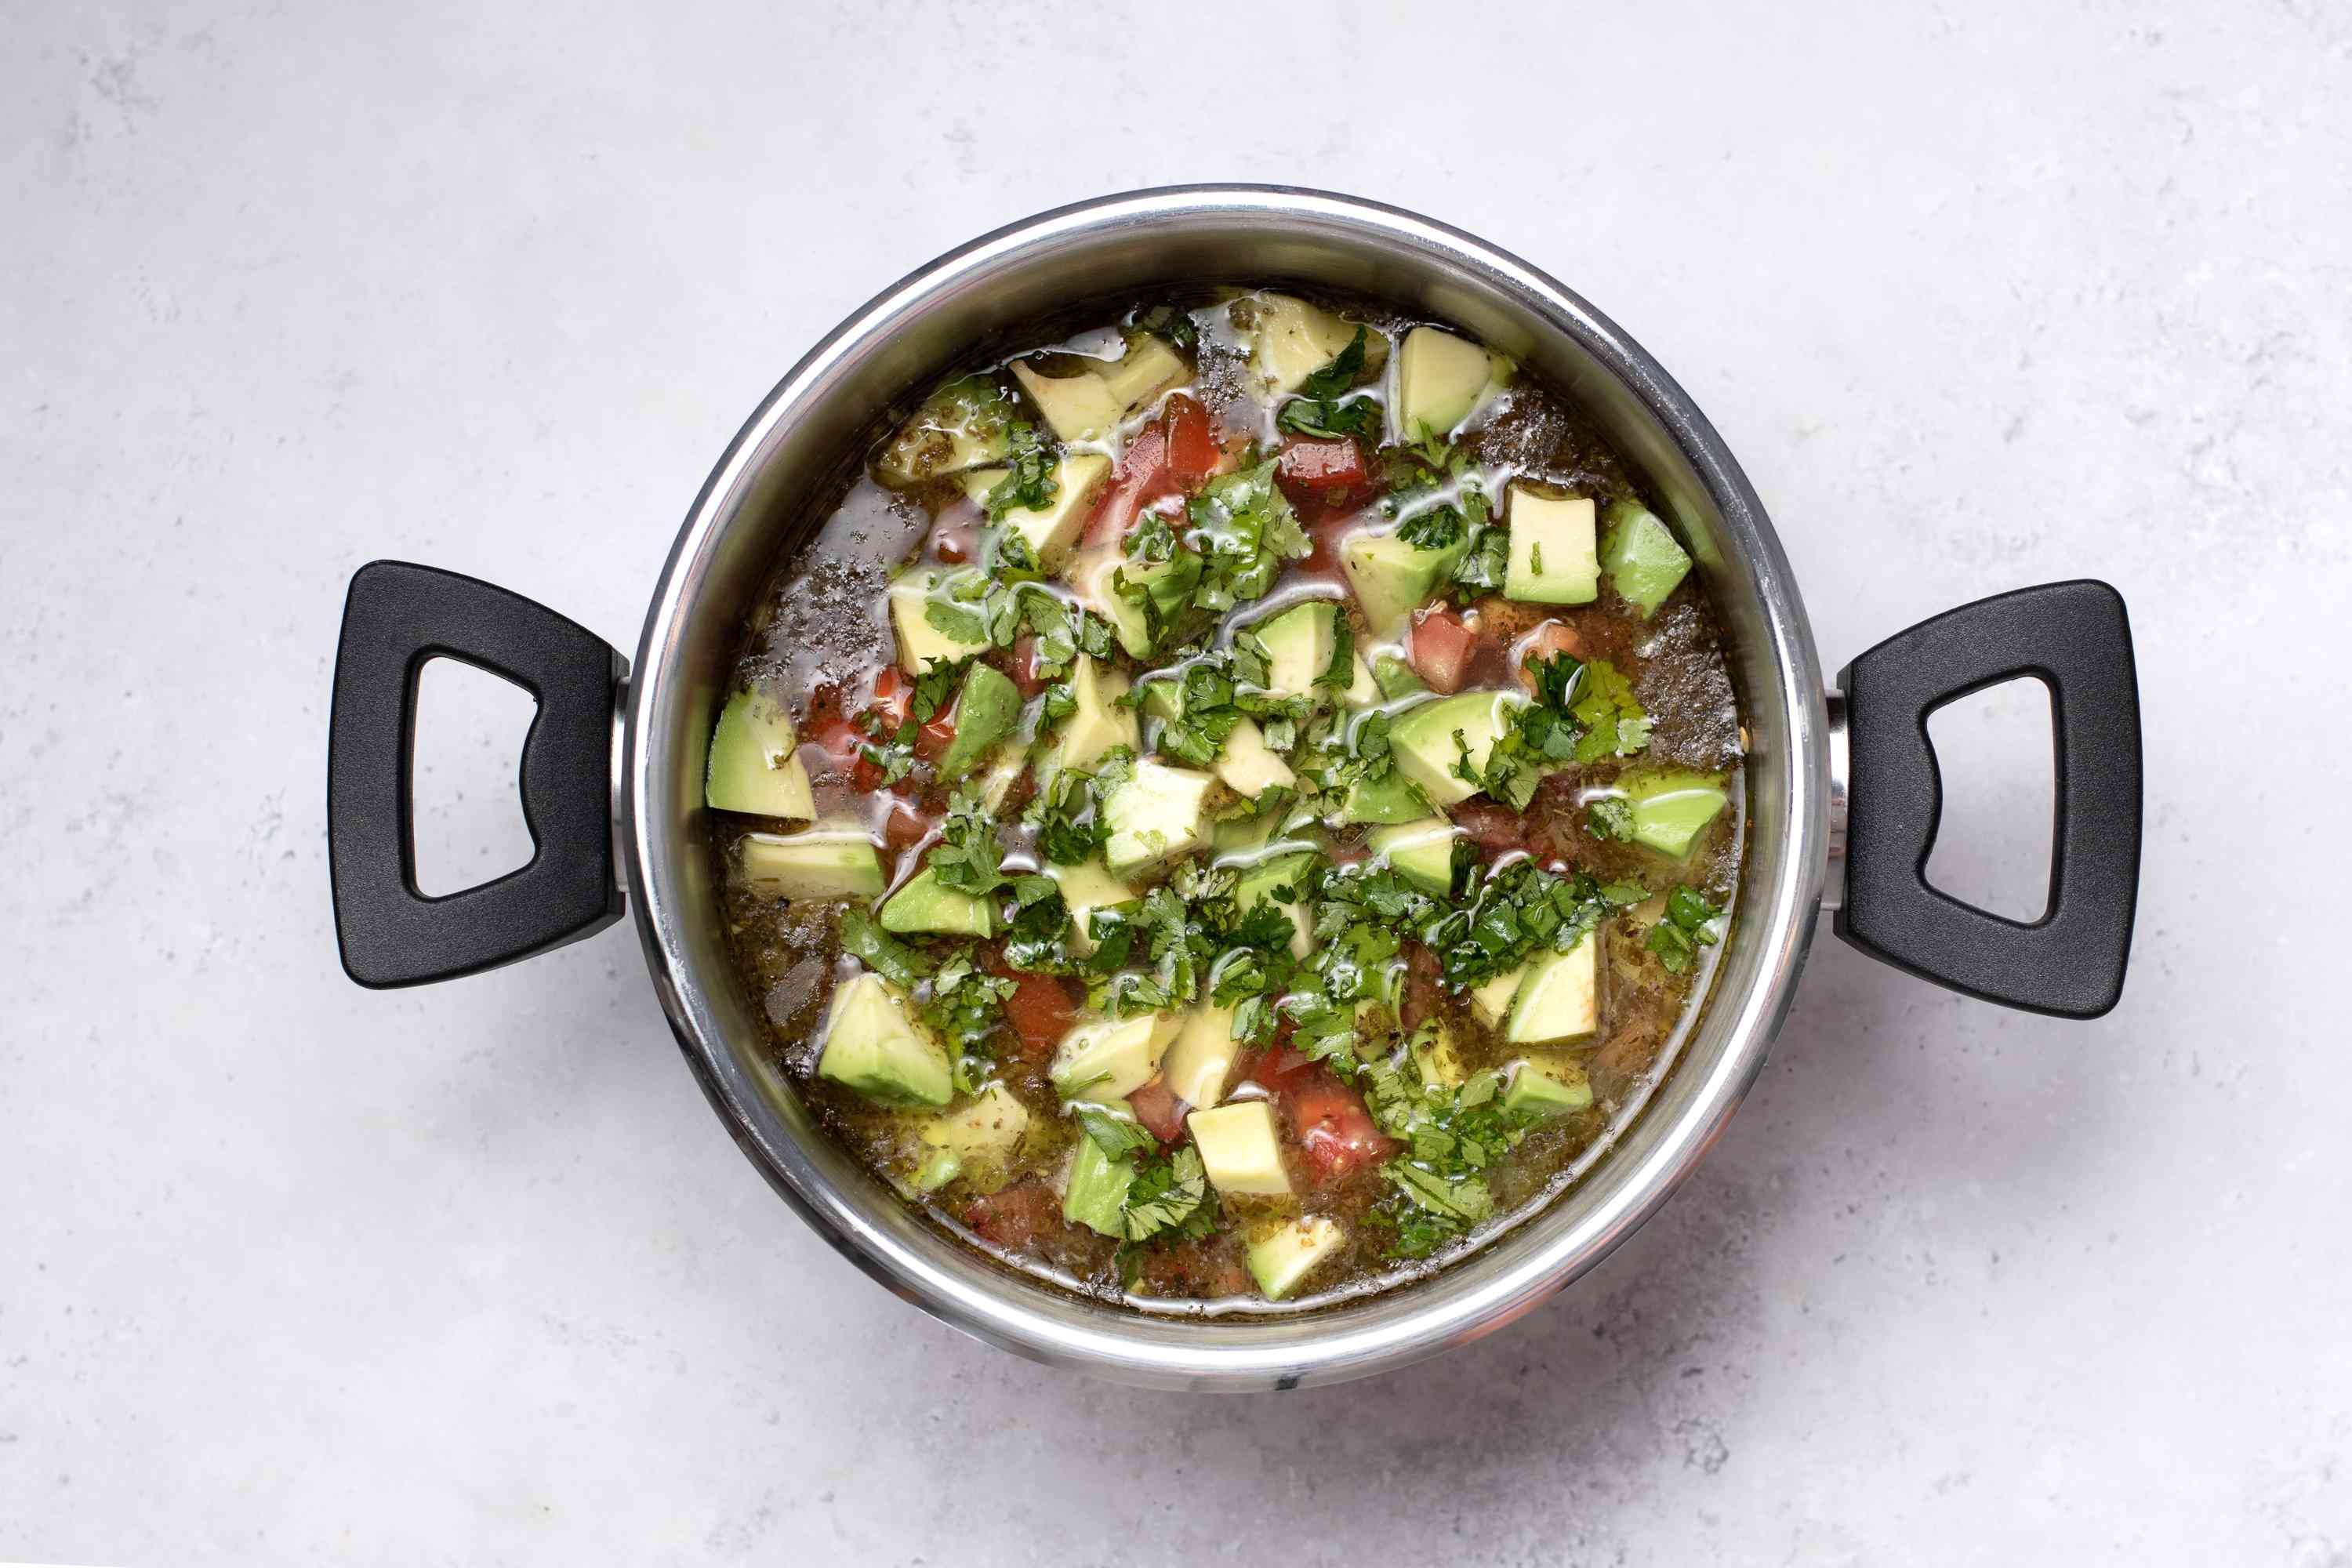 Chicken Avocado Soup (With Variations), cilantro and avocado added to the soup in the pot